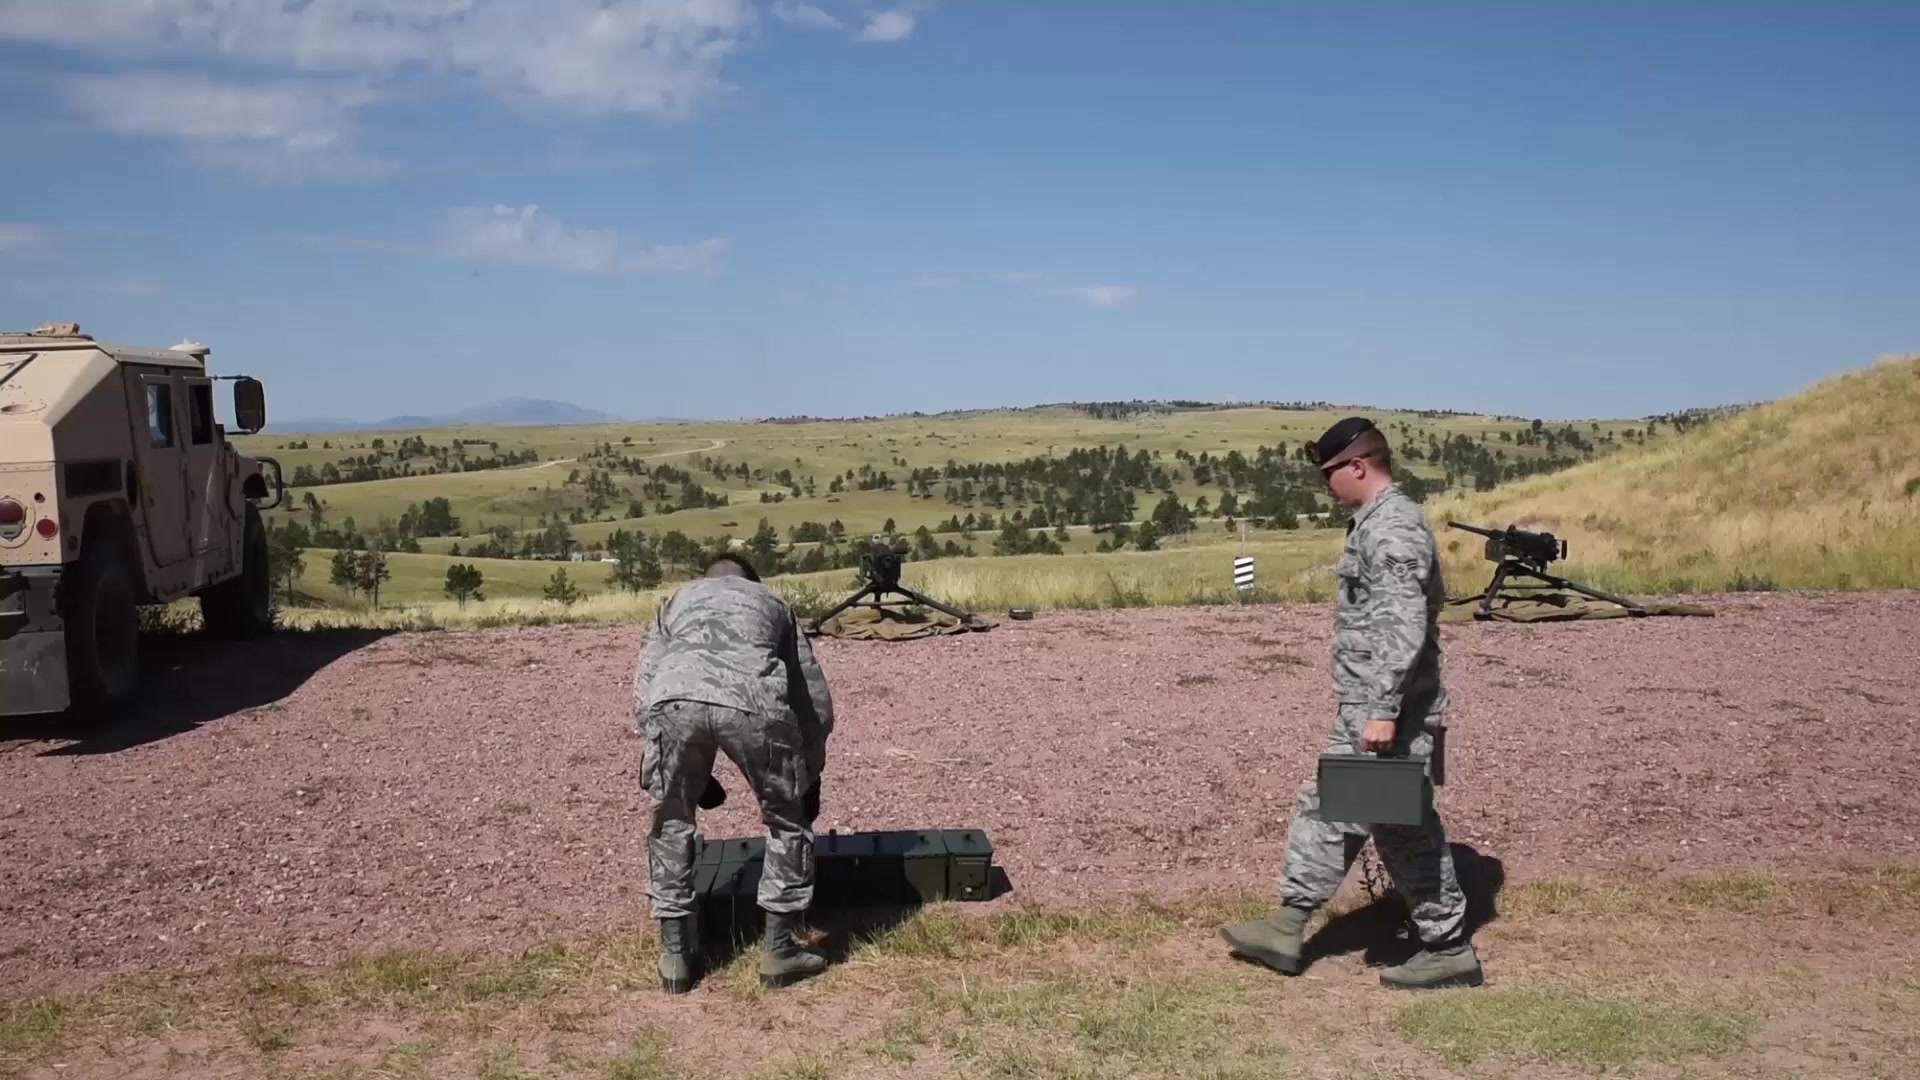 Members of the 153rd Security Forces Squadron went to Guernsey, Wyoming to train on the .50-caliber machine gun.